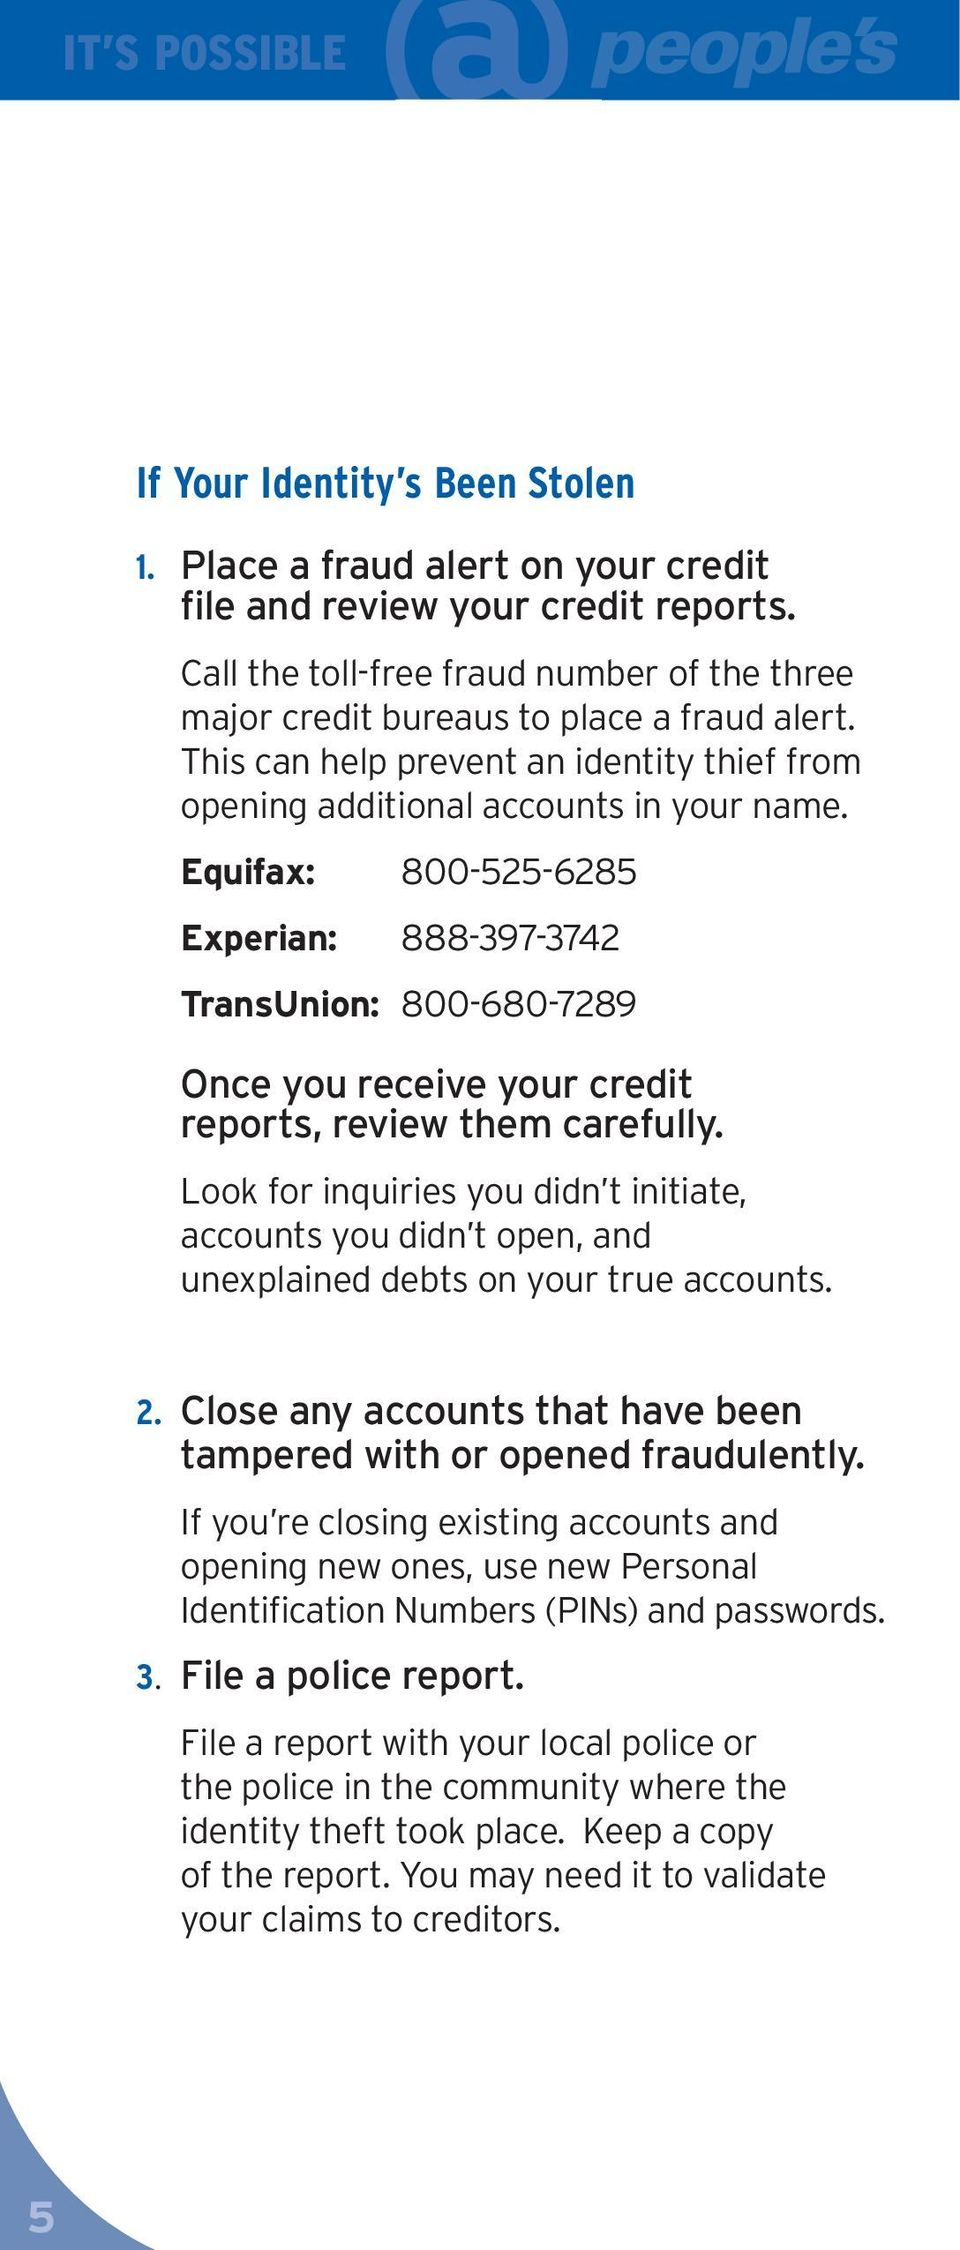 Equifax: 800-525-6285 Experian: 888-397-3742 TransUnion: 800-680-7289 Once you receive your credit reports, review them carefully.